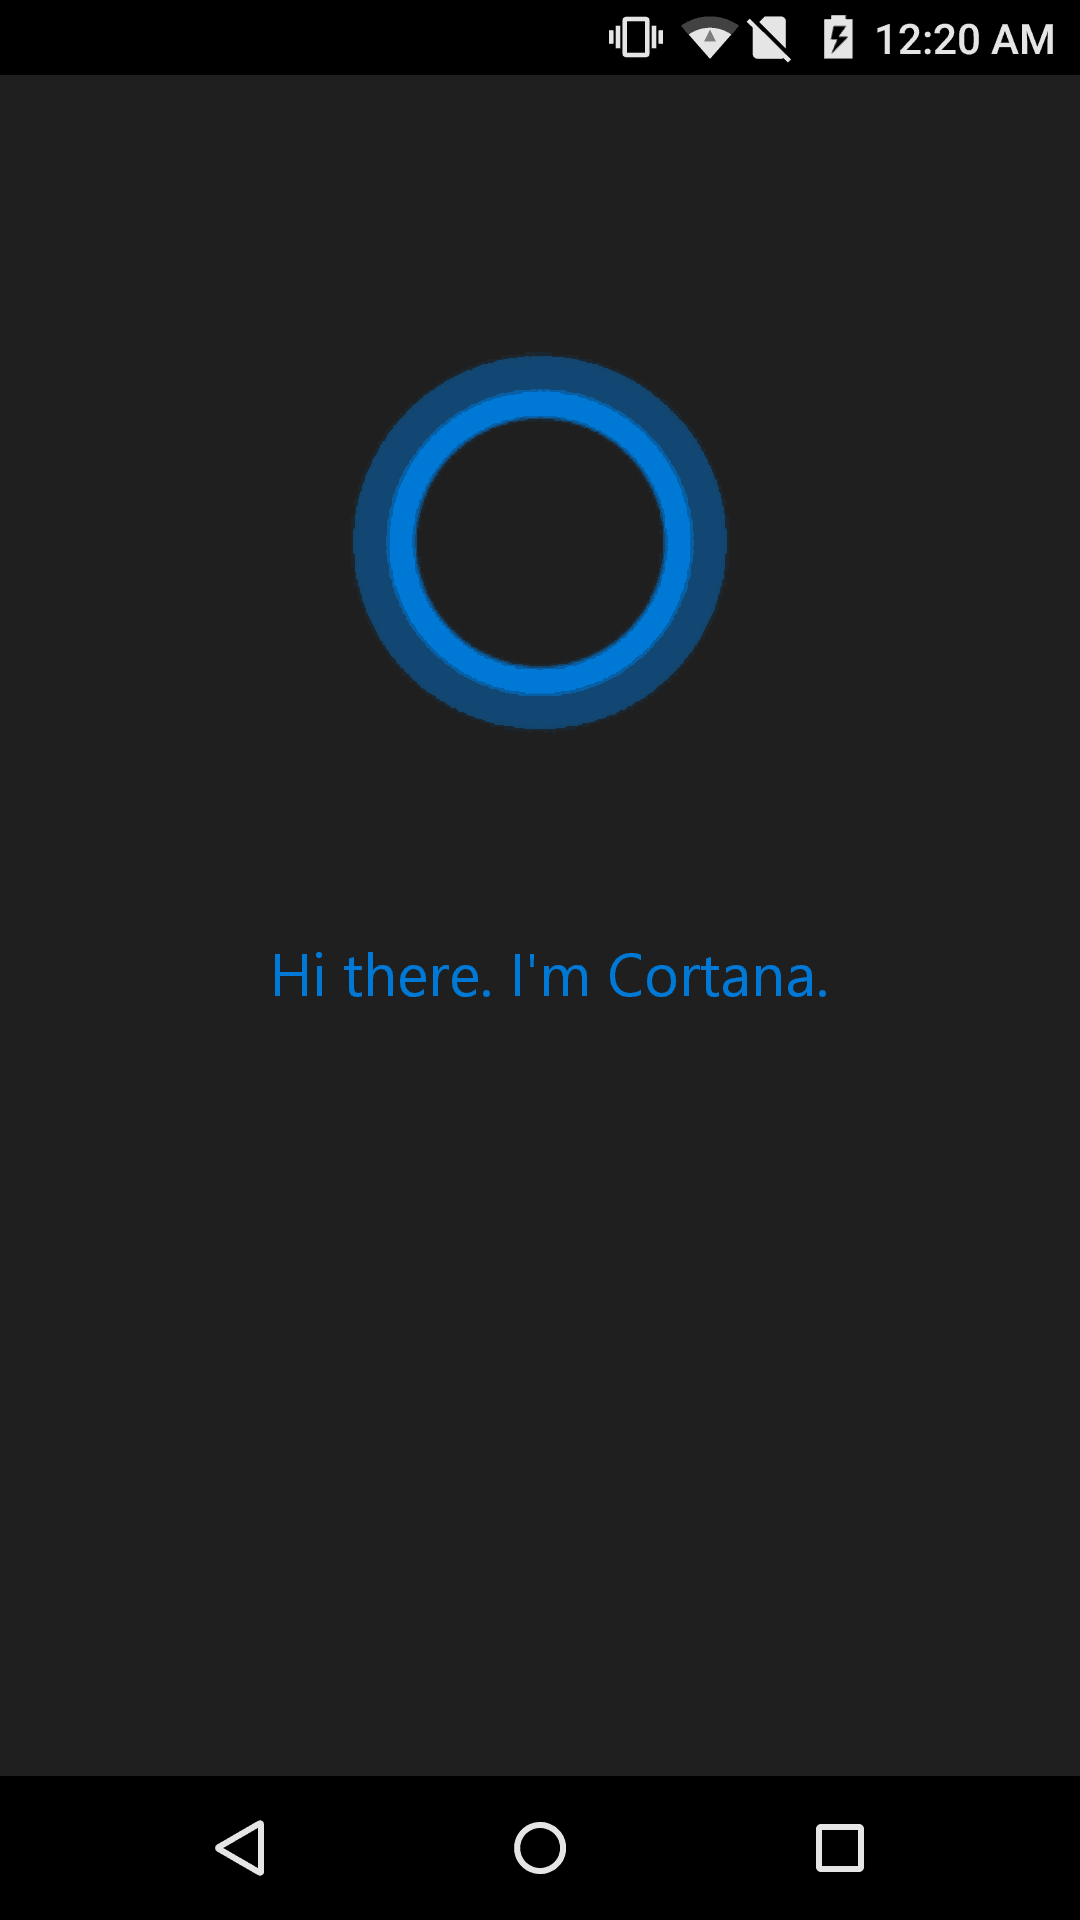 Once you have installed cortana it will ask you to sign in with your